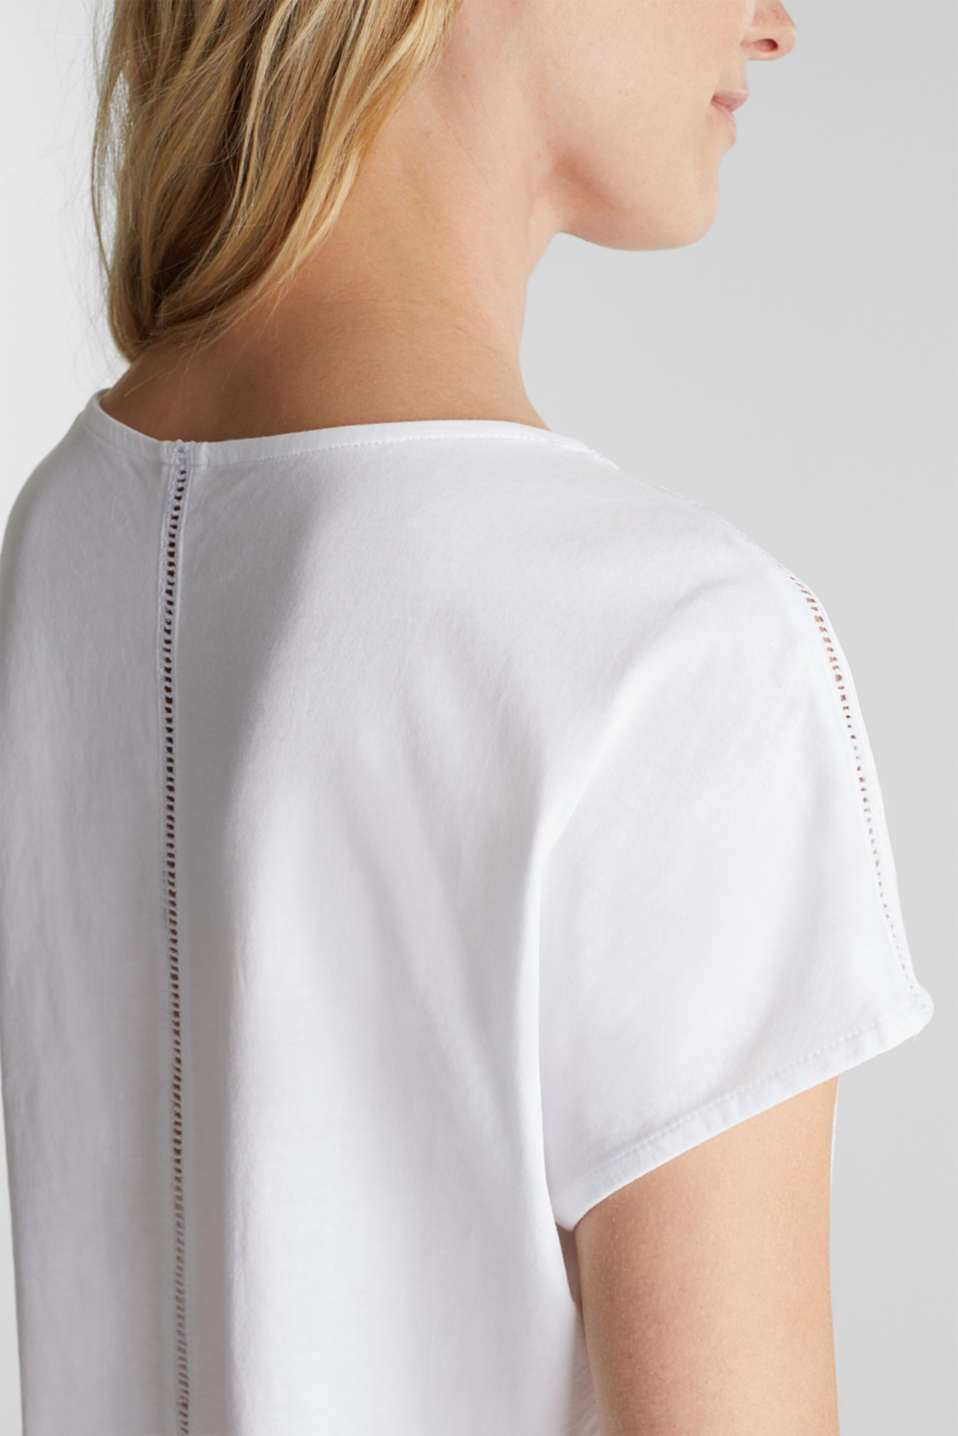 T-shirt with broderie anglaise, organic cotton, WHITE, detail image number 2